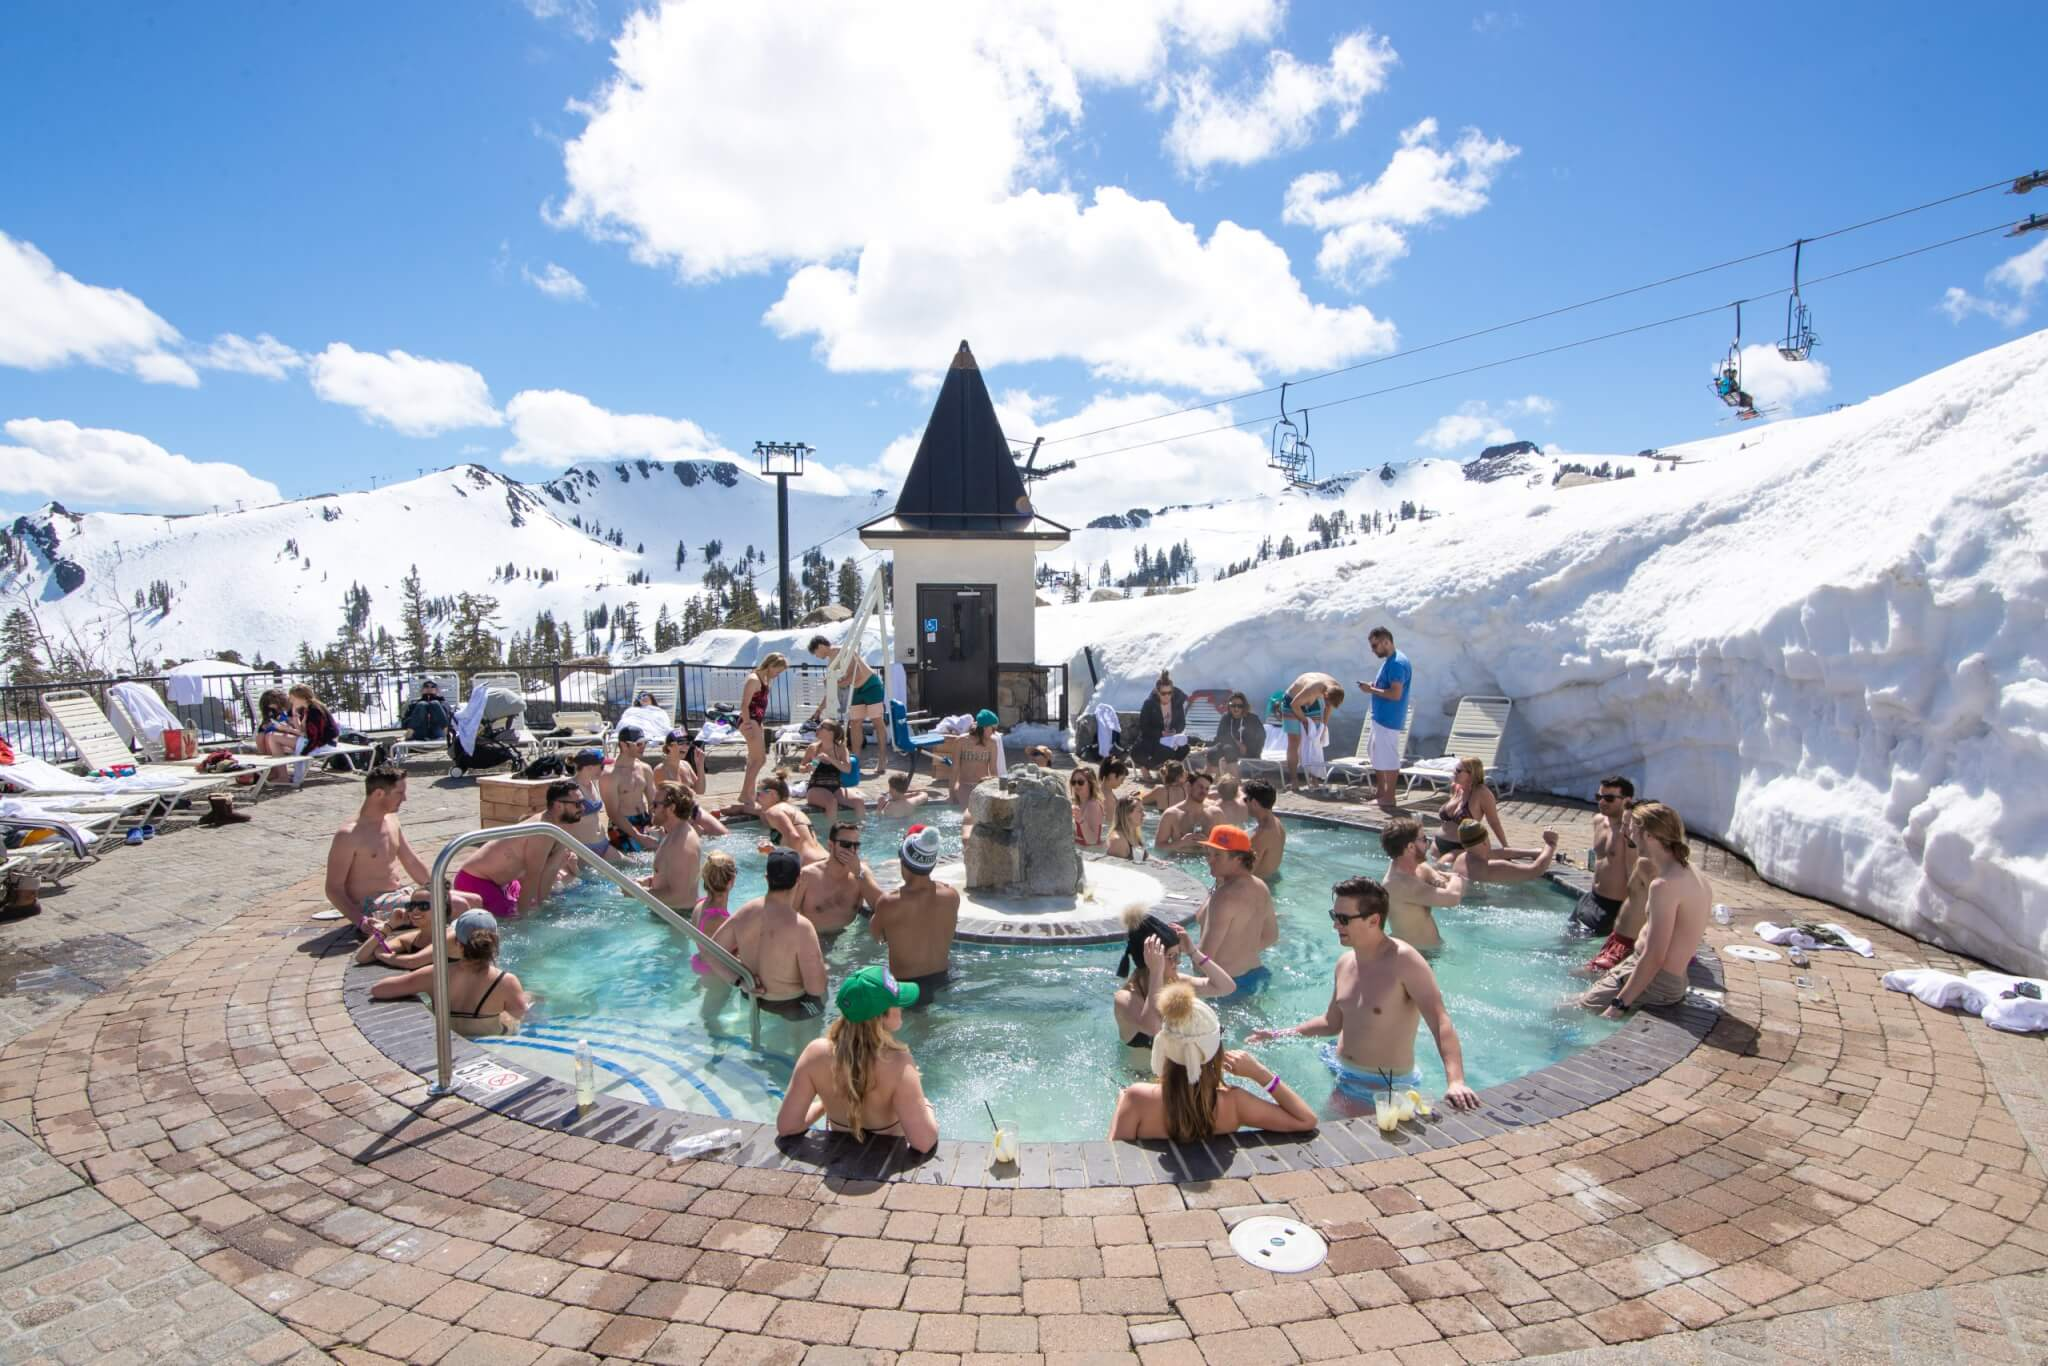 Spring skiing fun with hot tub at Squaw Valley High Camp in Lake Tahoe California